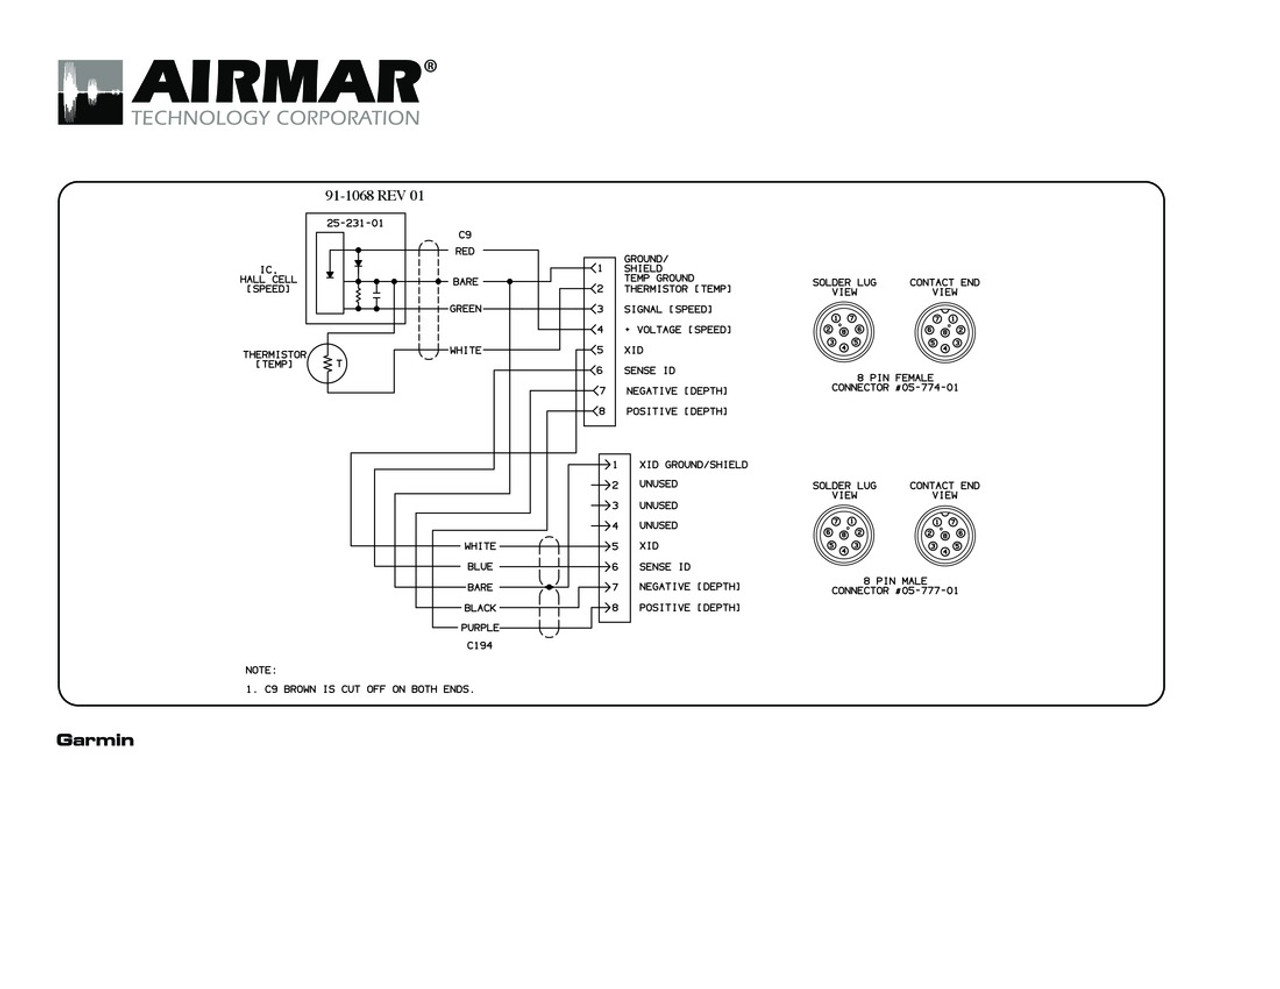 airmar wiring diagram garmin st850 8 pin s t blue bottle marine rh bluebottlemarine com Garmin echoMAP 50s Wiring-Diagram Garmin 396 Aircraft Wiring Diagram